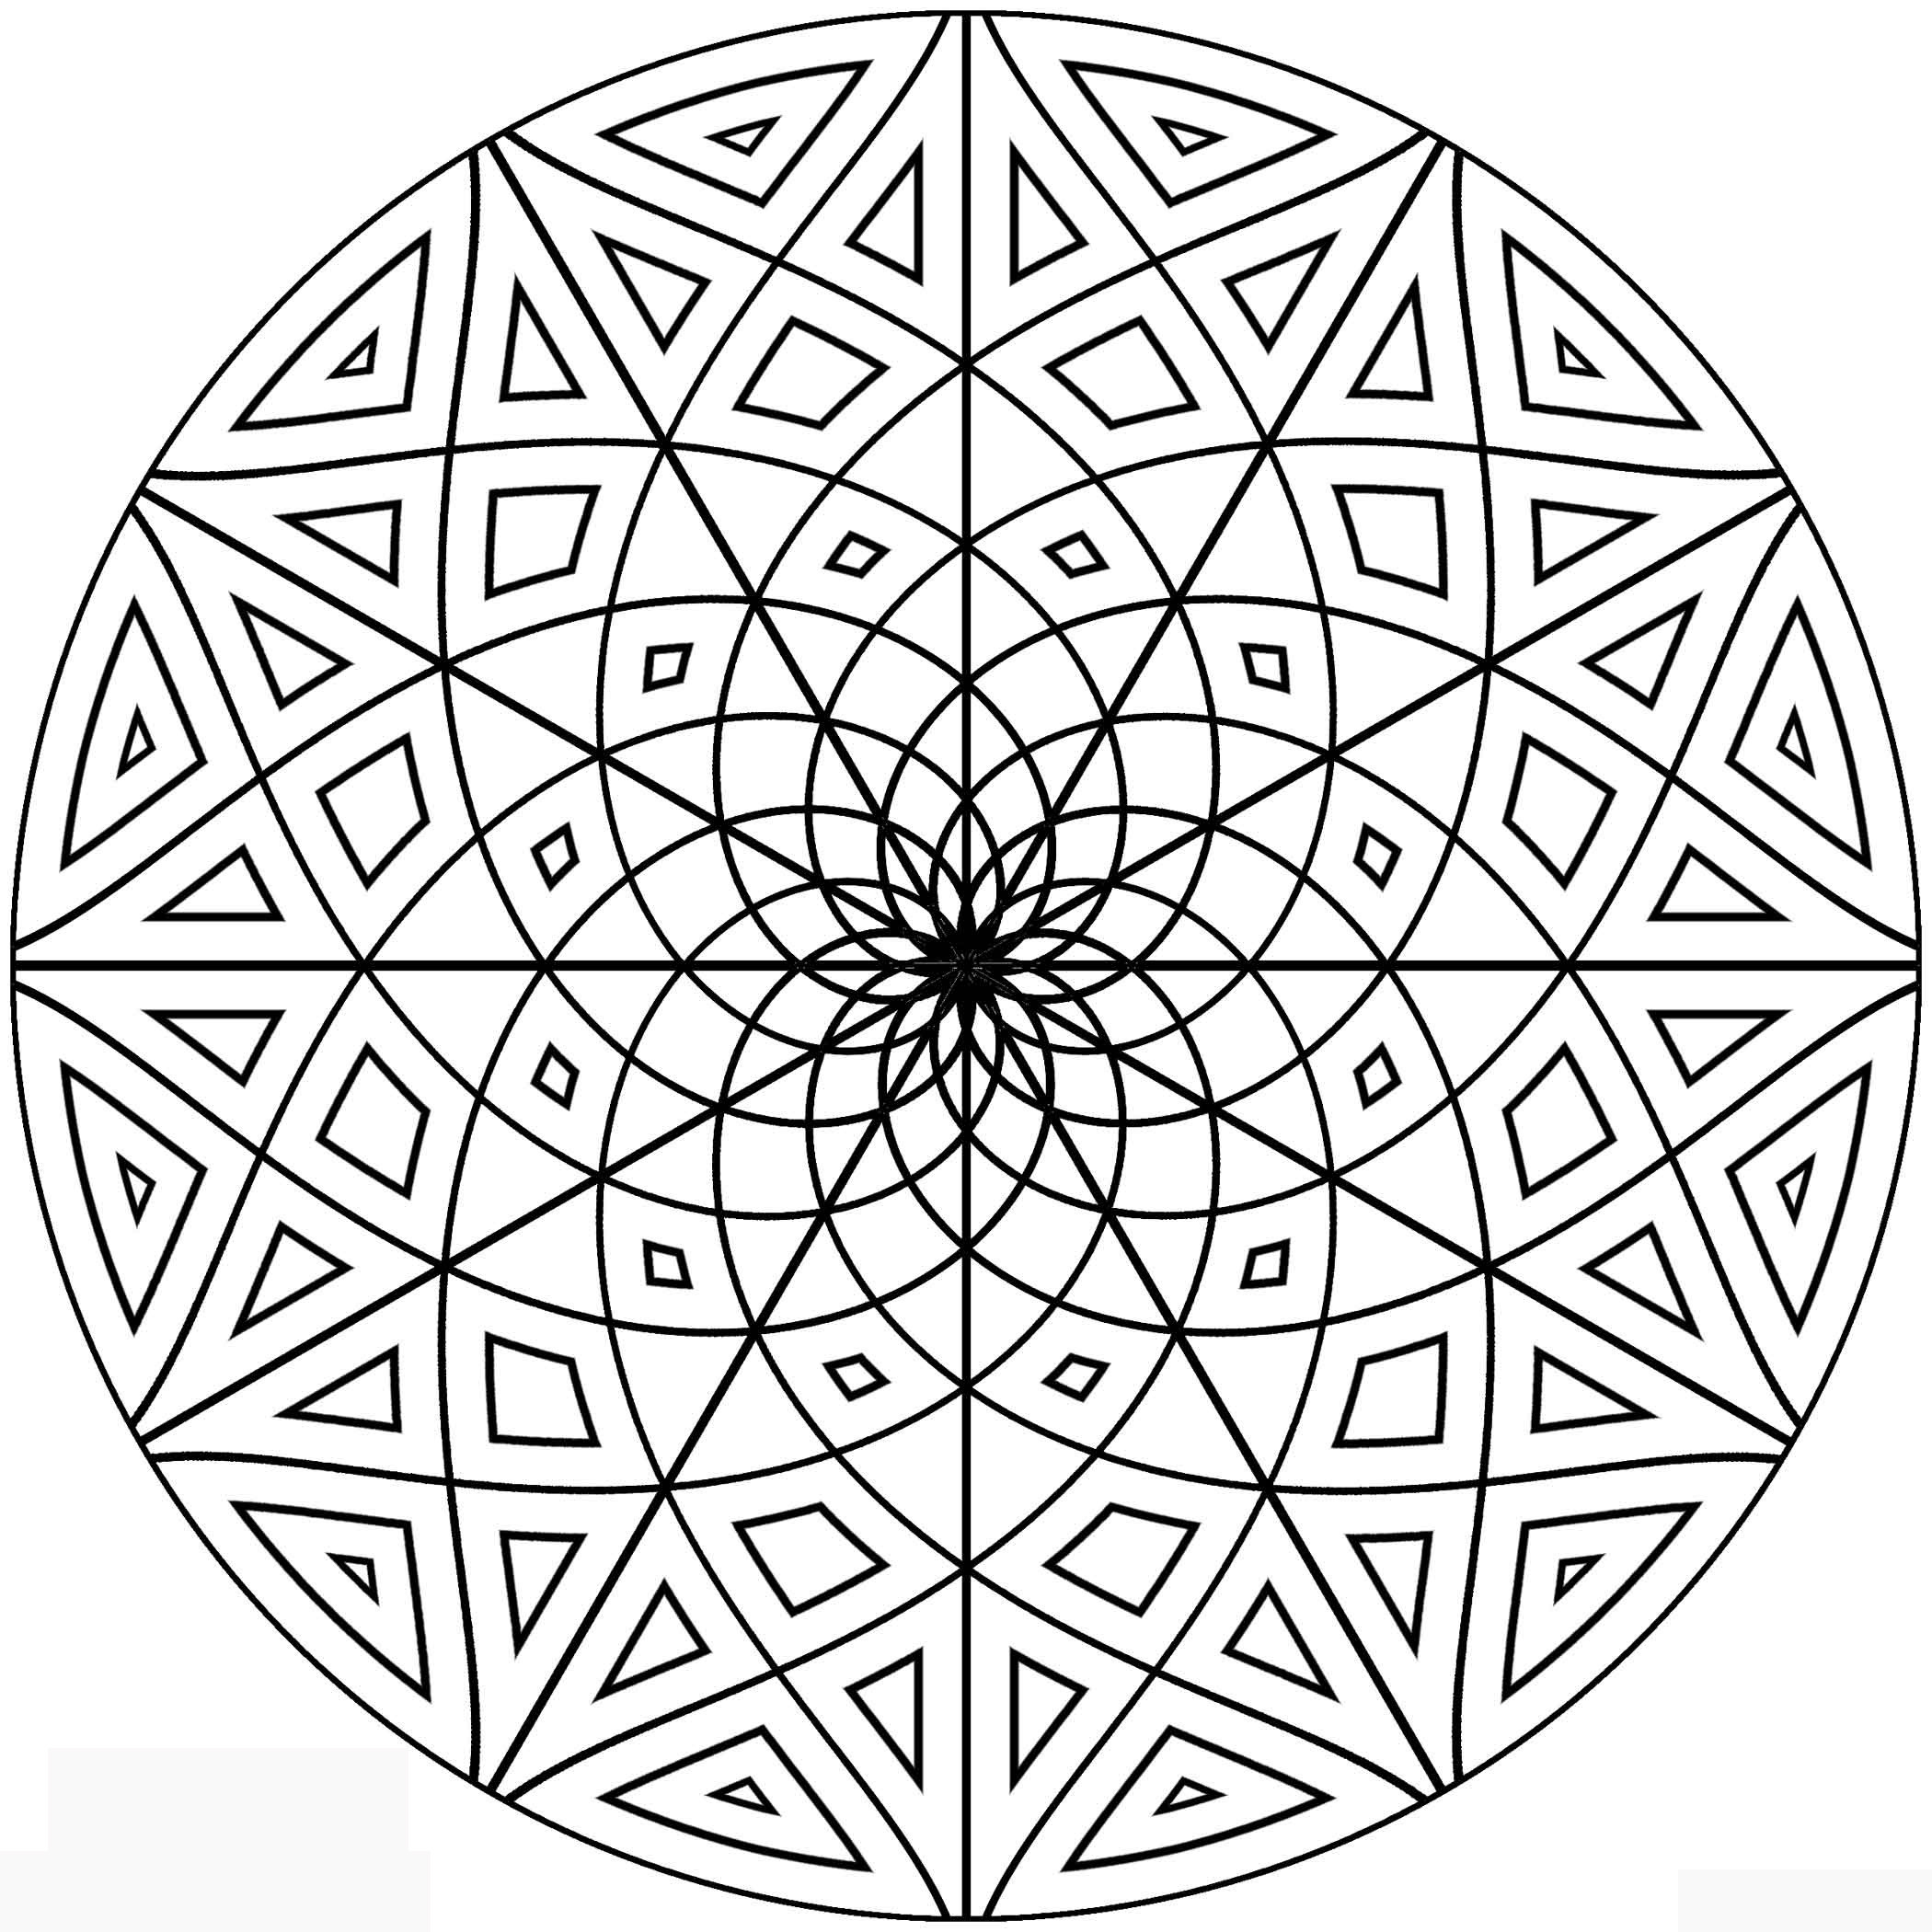 Design Coloring Pages For Kids  Free Printable Geometric Coloring Pages for Adults